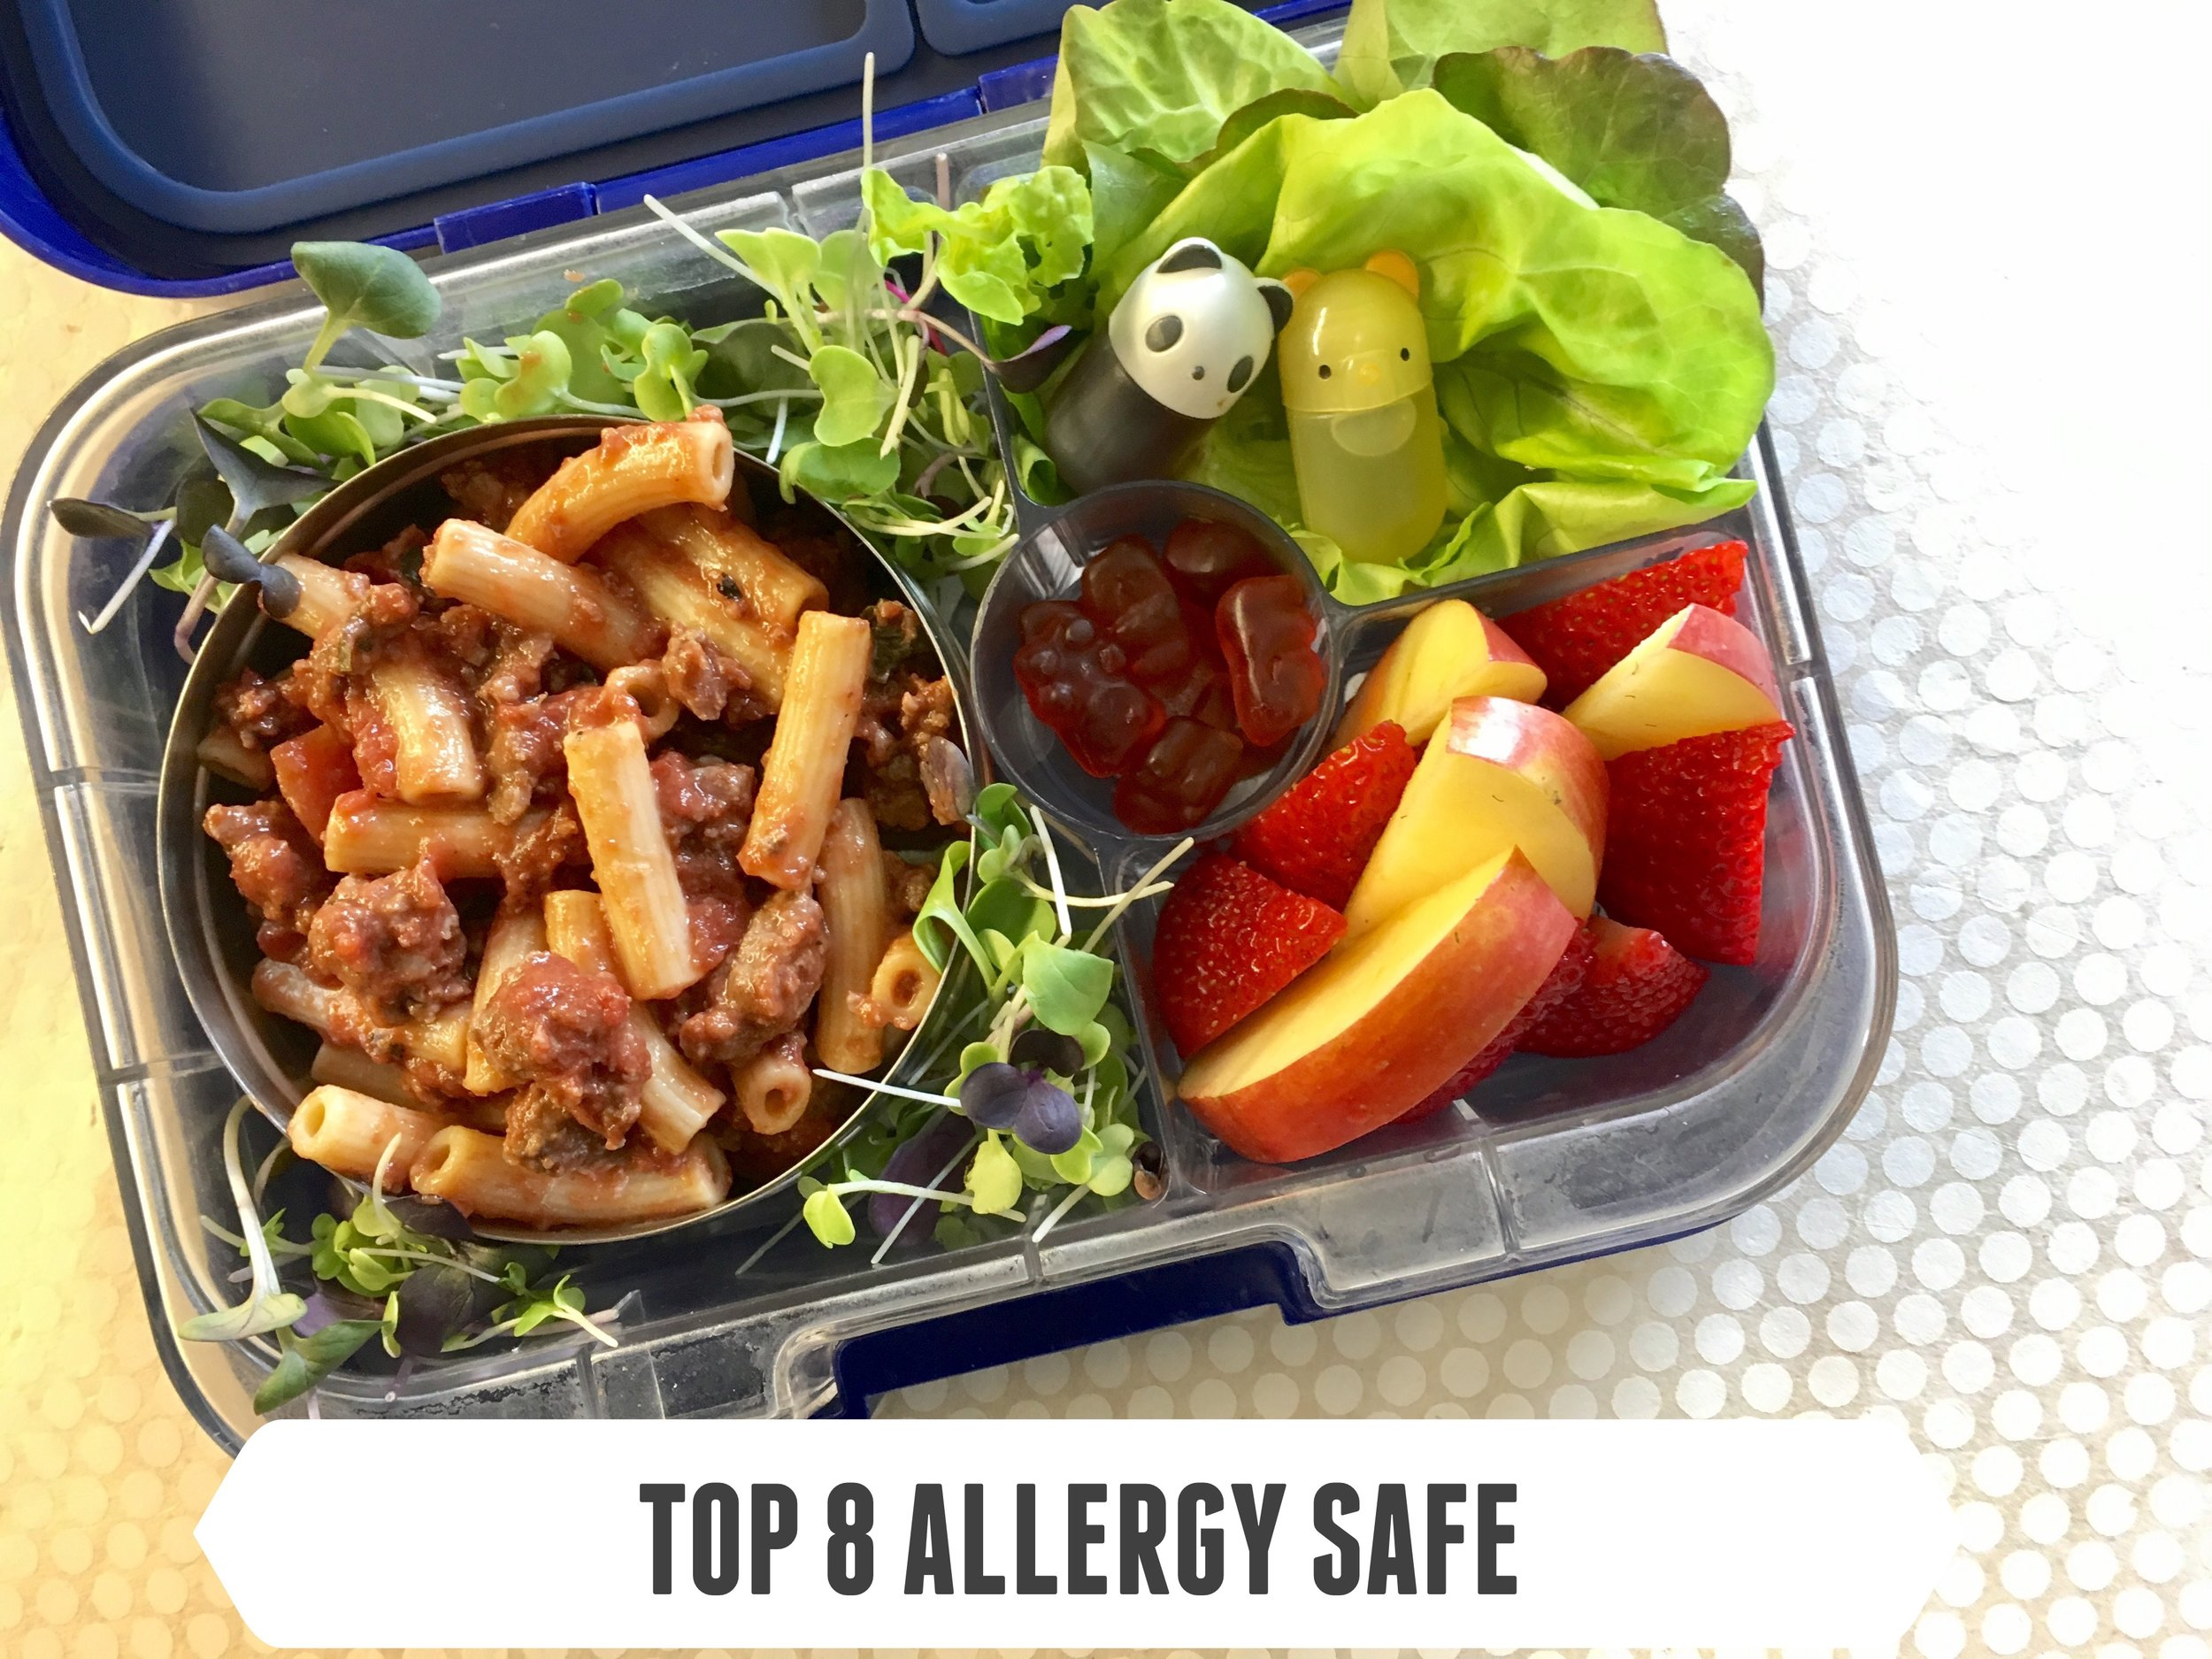 Top 8 Allergy Safe #4